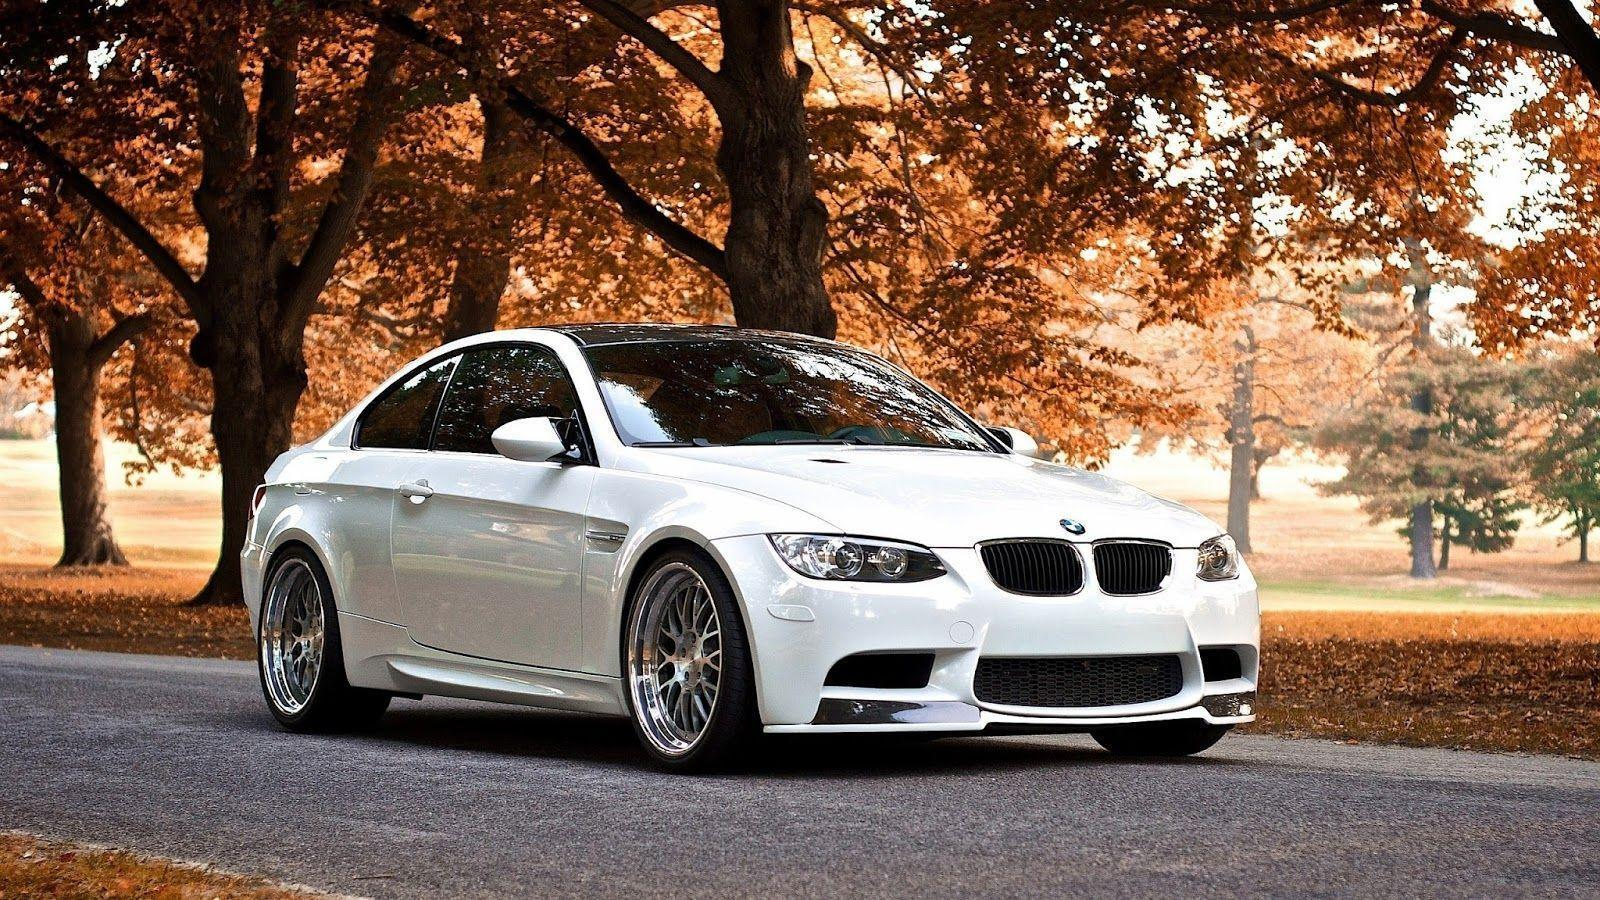 G power bmw m5 hurricane rs wallpaper bmw cars wallpapers in jpg.